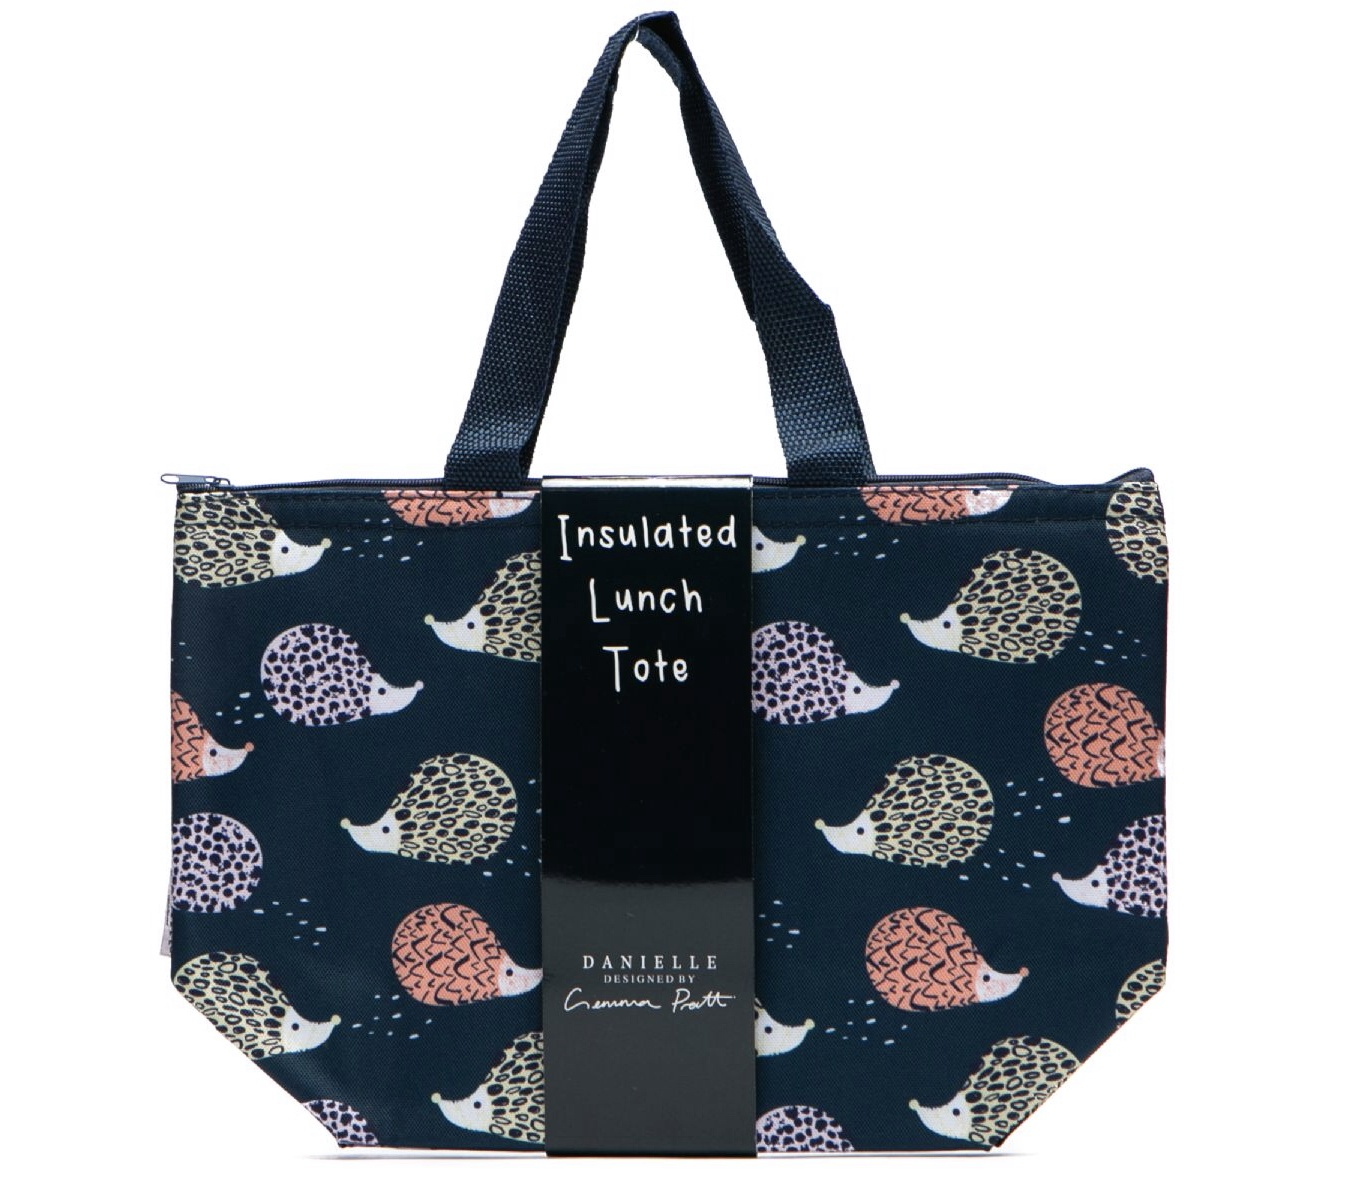 Hedgehog insulated lunch tote